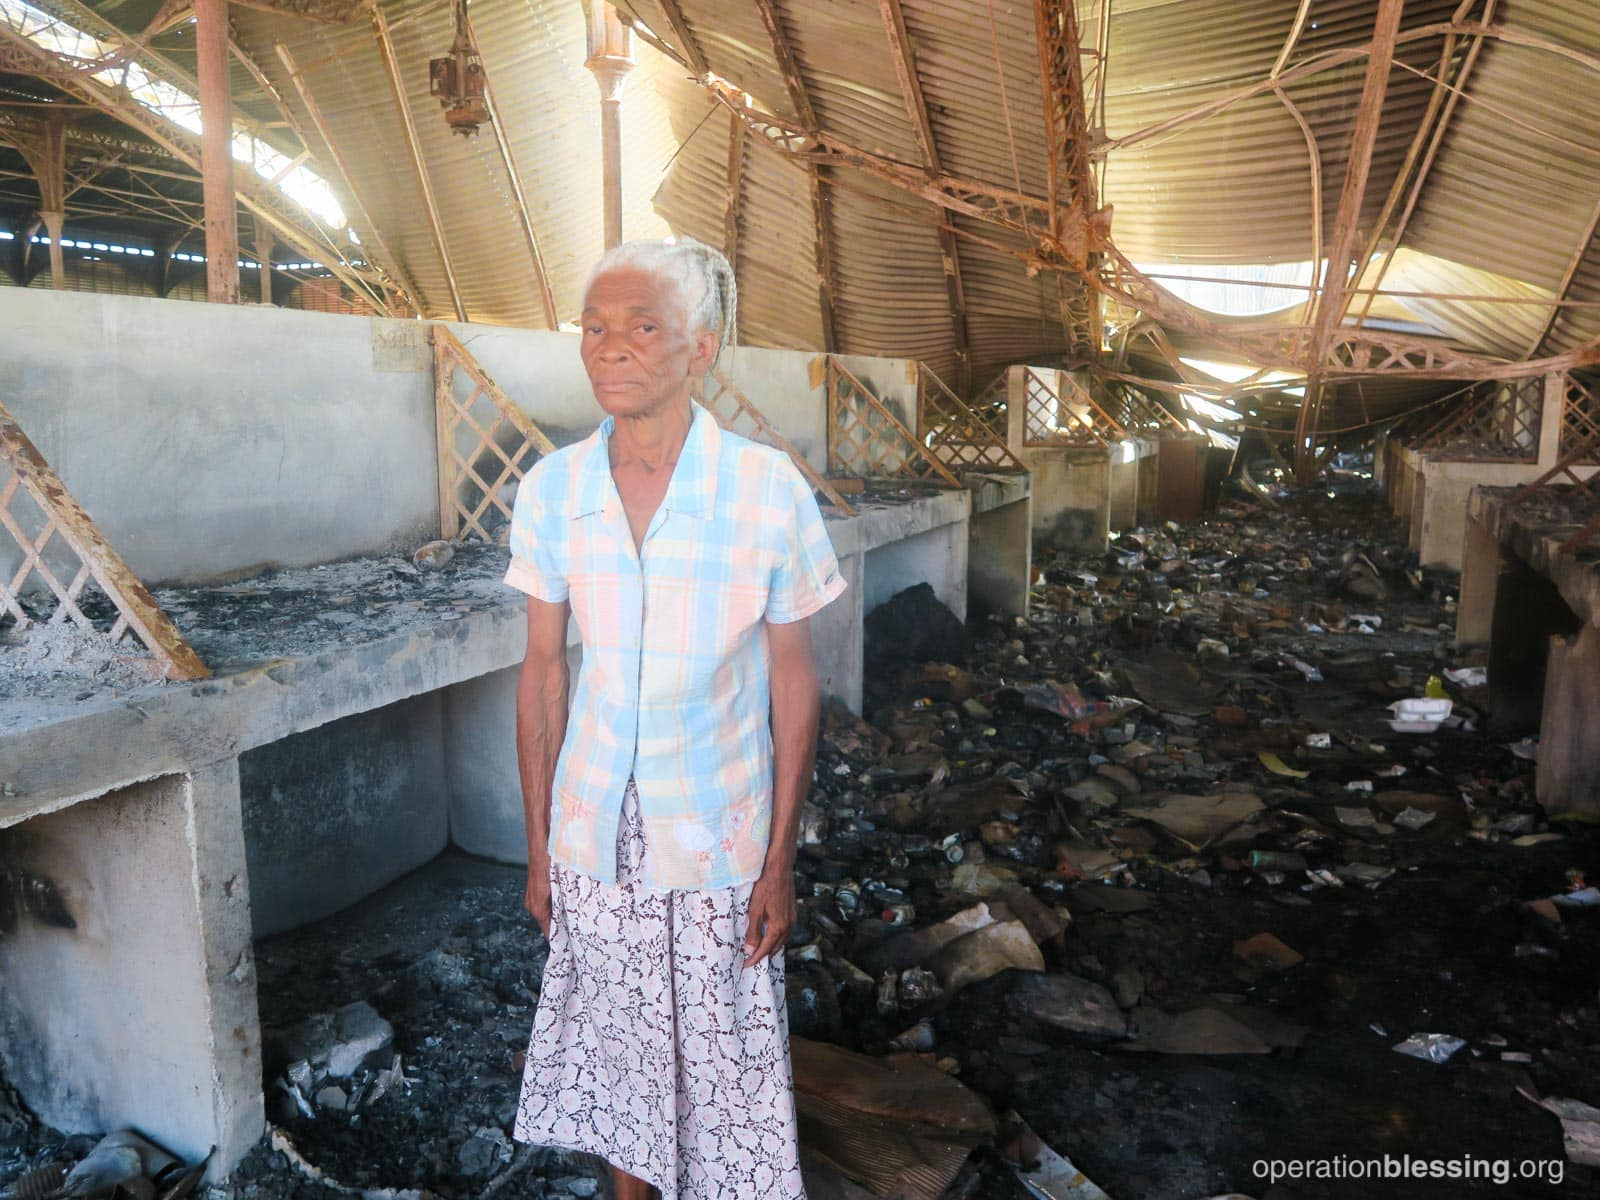 Guerrier stands among the ashes and ruin of the Iron Market fire in Haiti that destroyed her business.